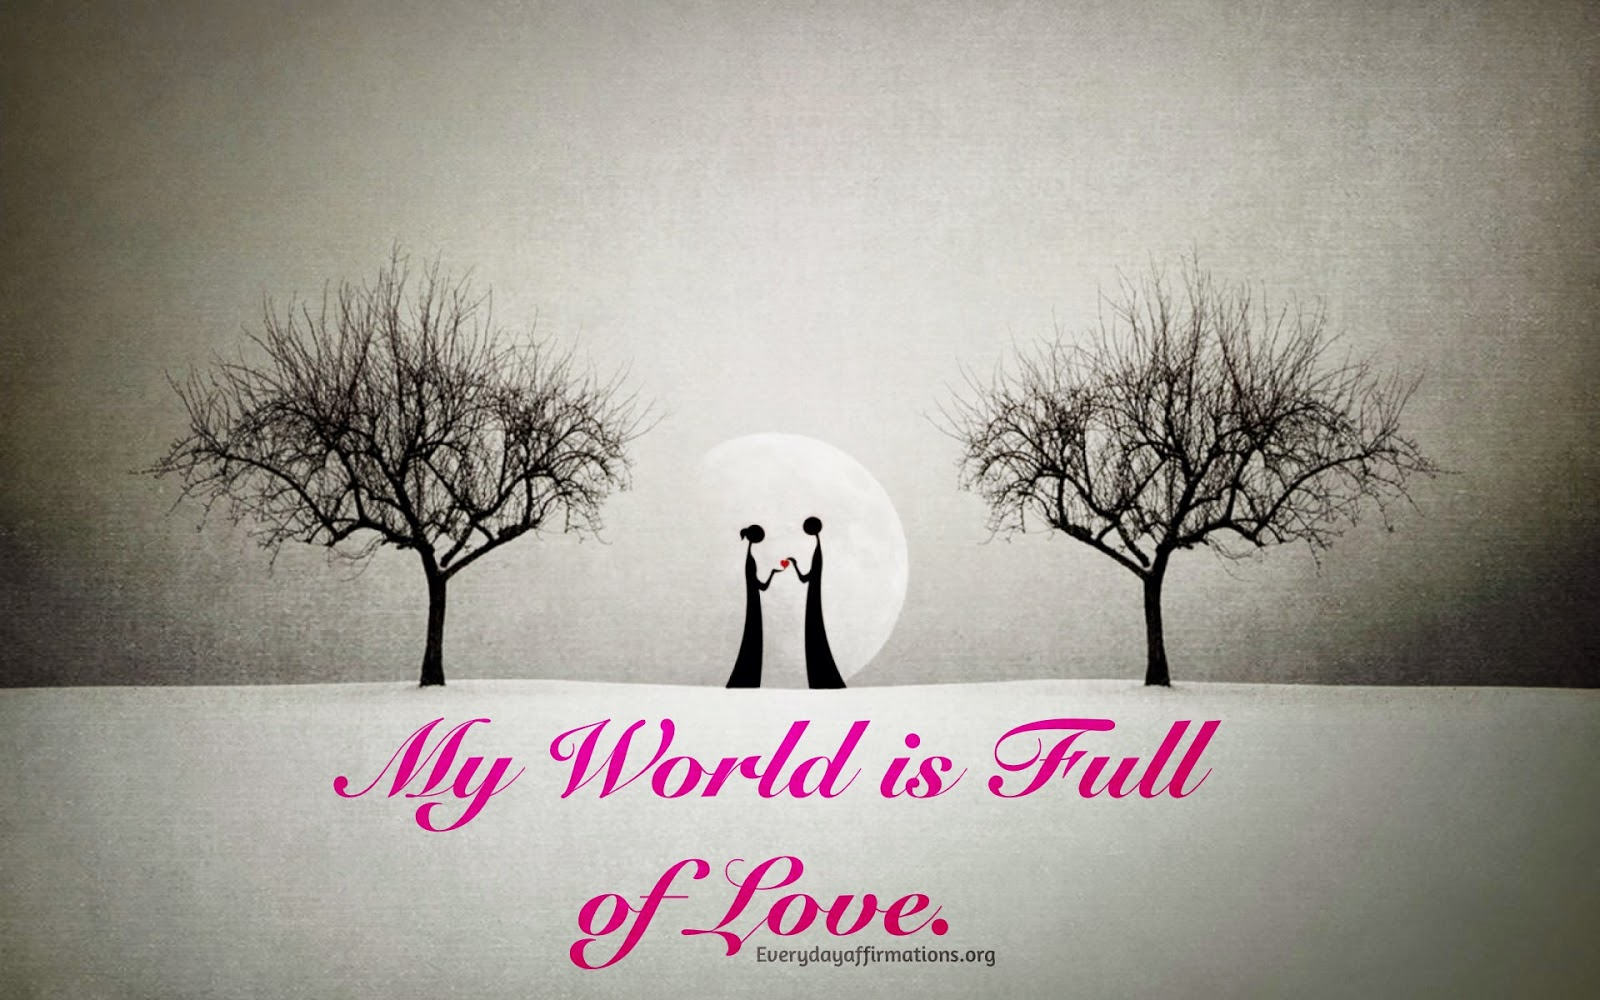 Affirmations for Love, Daily Affirmations 2014, Daily Affirmations 2014